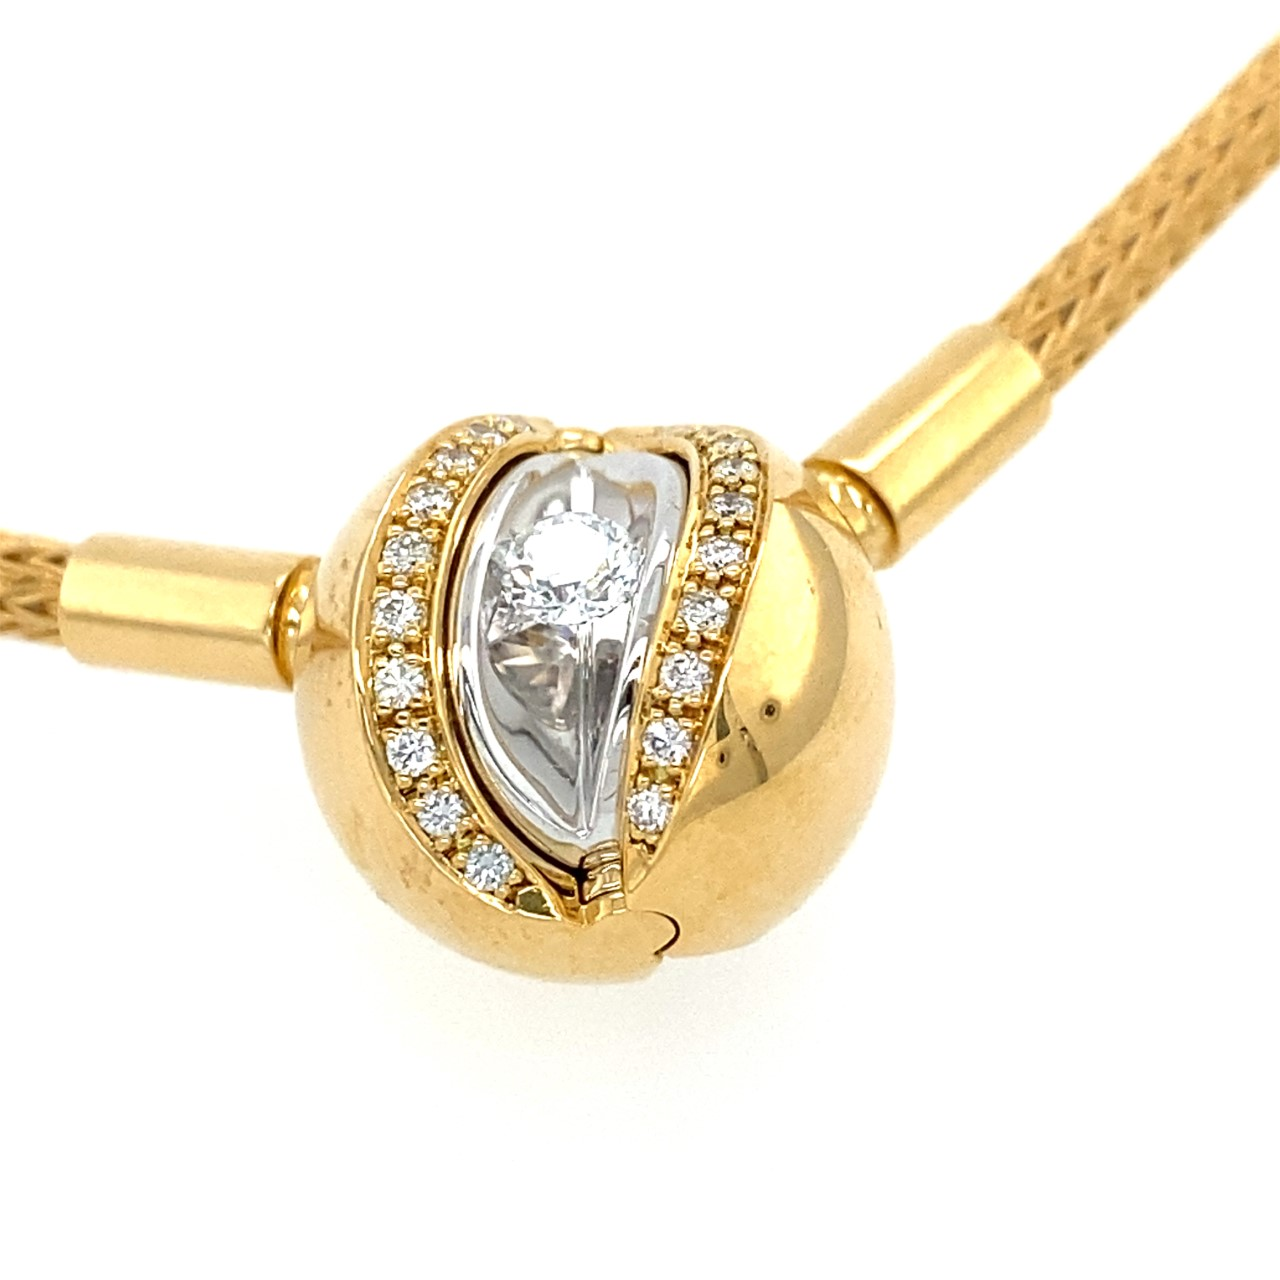 Changeable Gold Pendant with Diamonds and Pearl